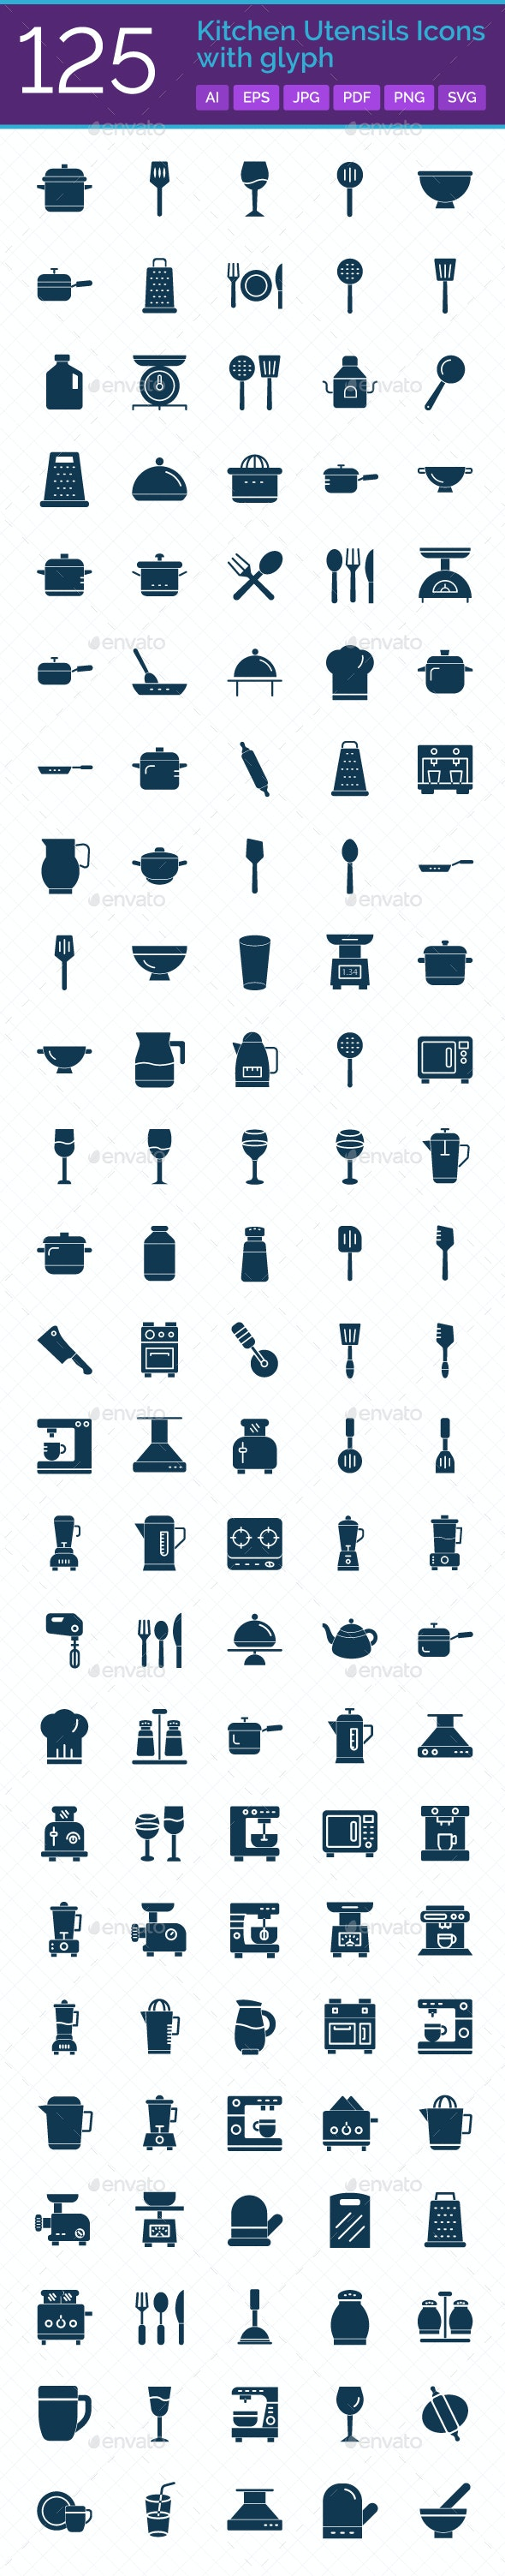 125 Kitchen Utensils Icons with Glyph - Icons